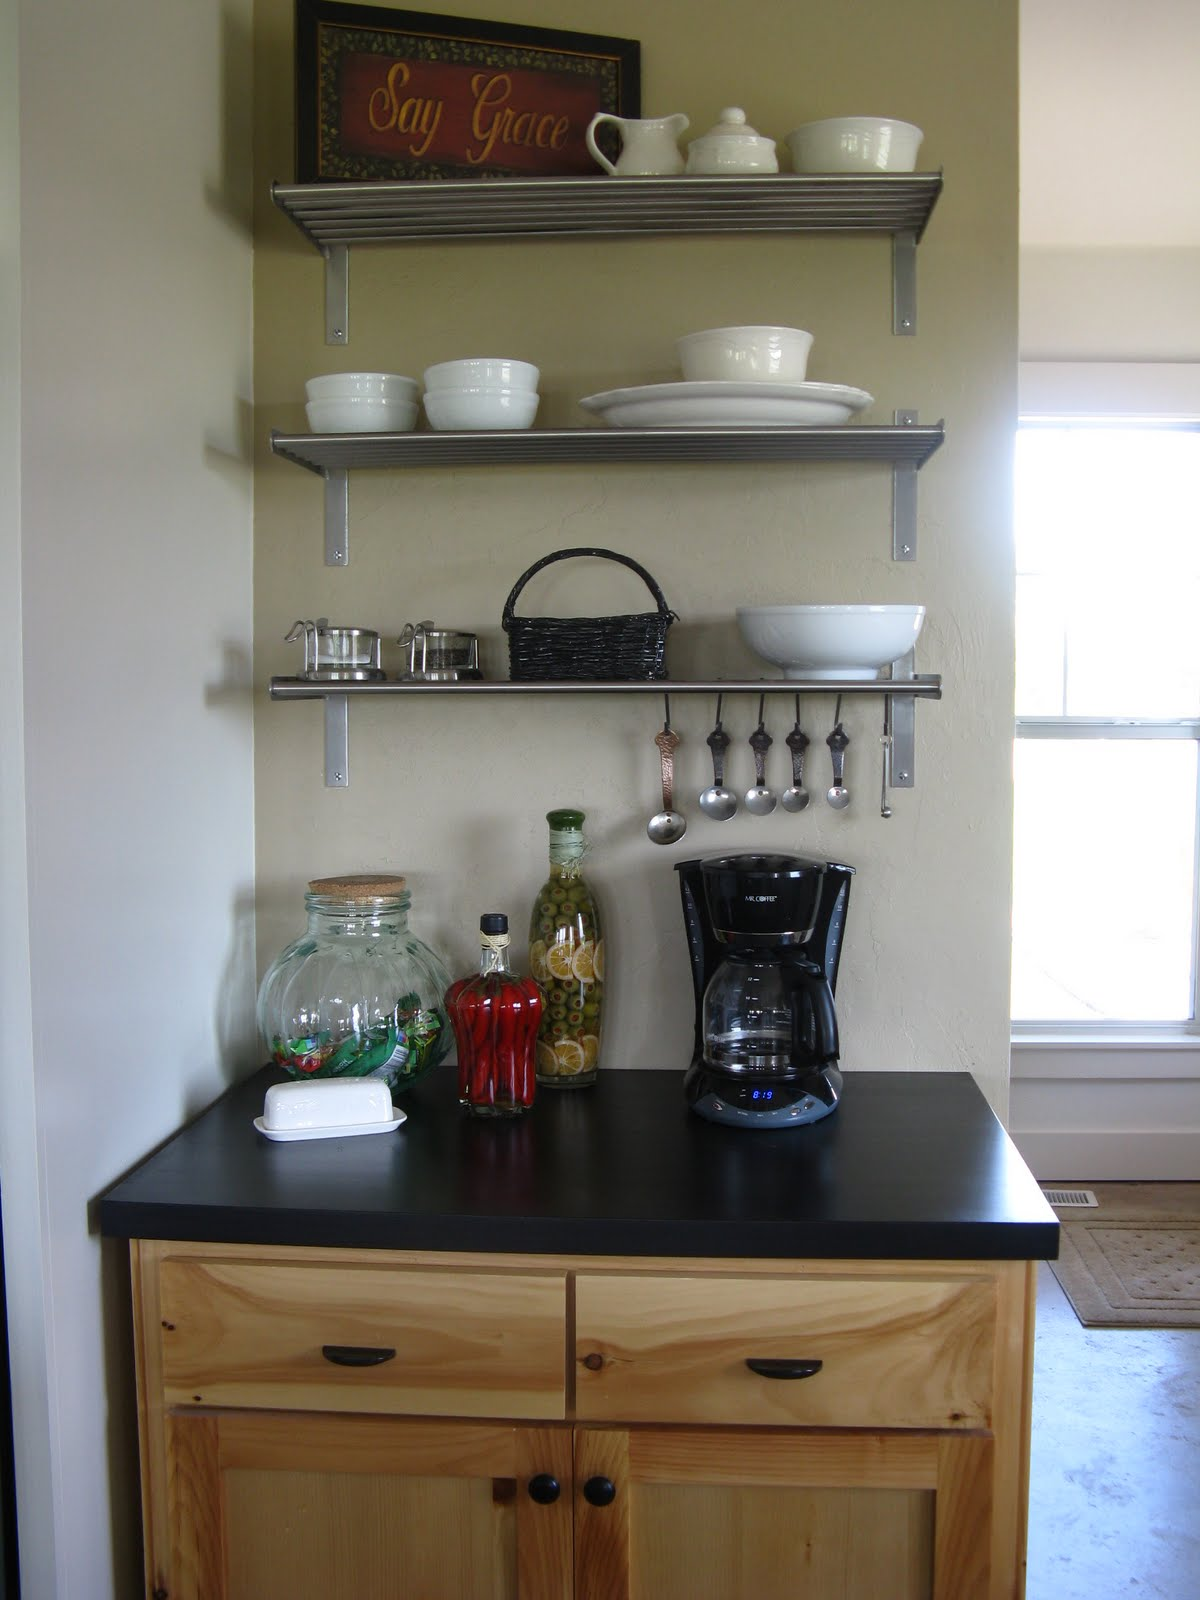 IKEA Kitchen Shelves and Storage